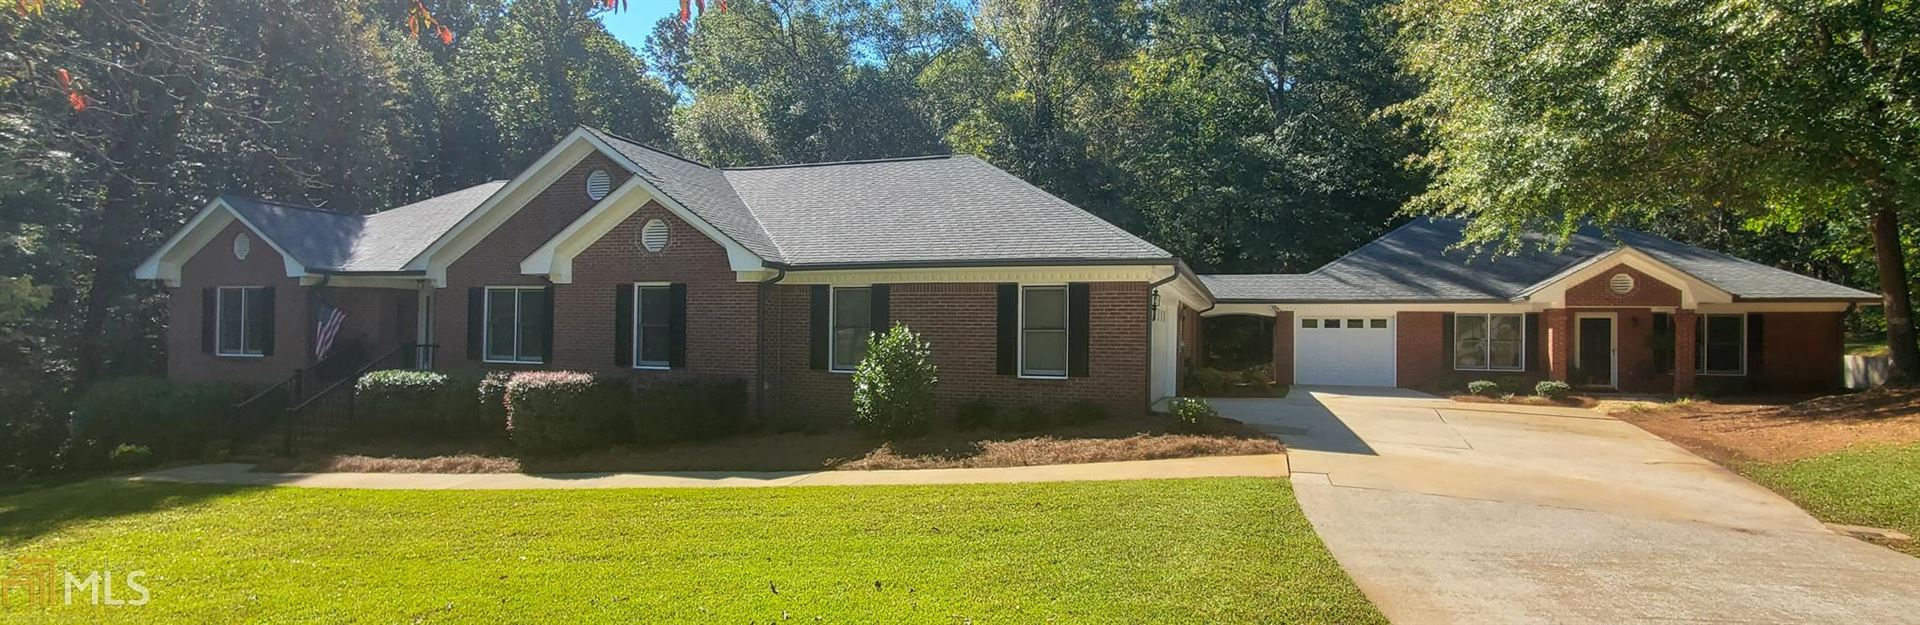 1676 Millers Mill Rd, Stockbridge, GA 30281 - MLS#: 8871385